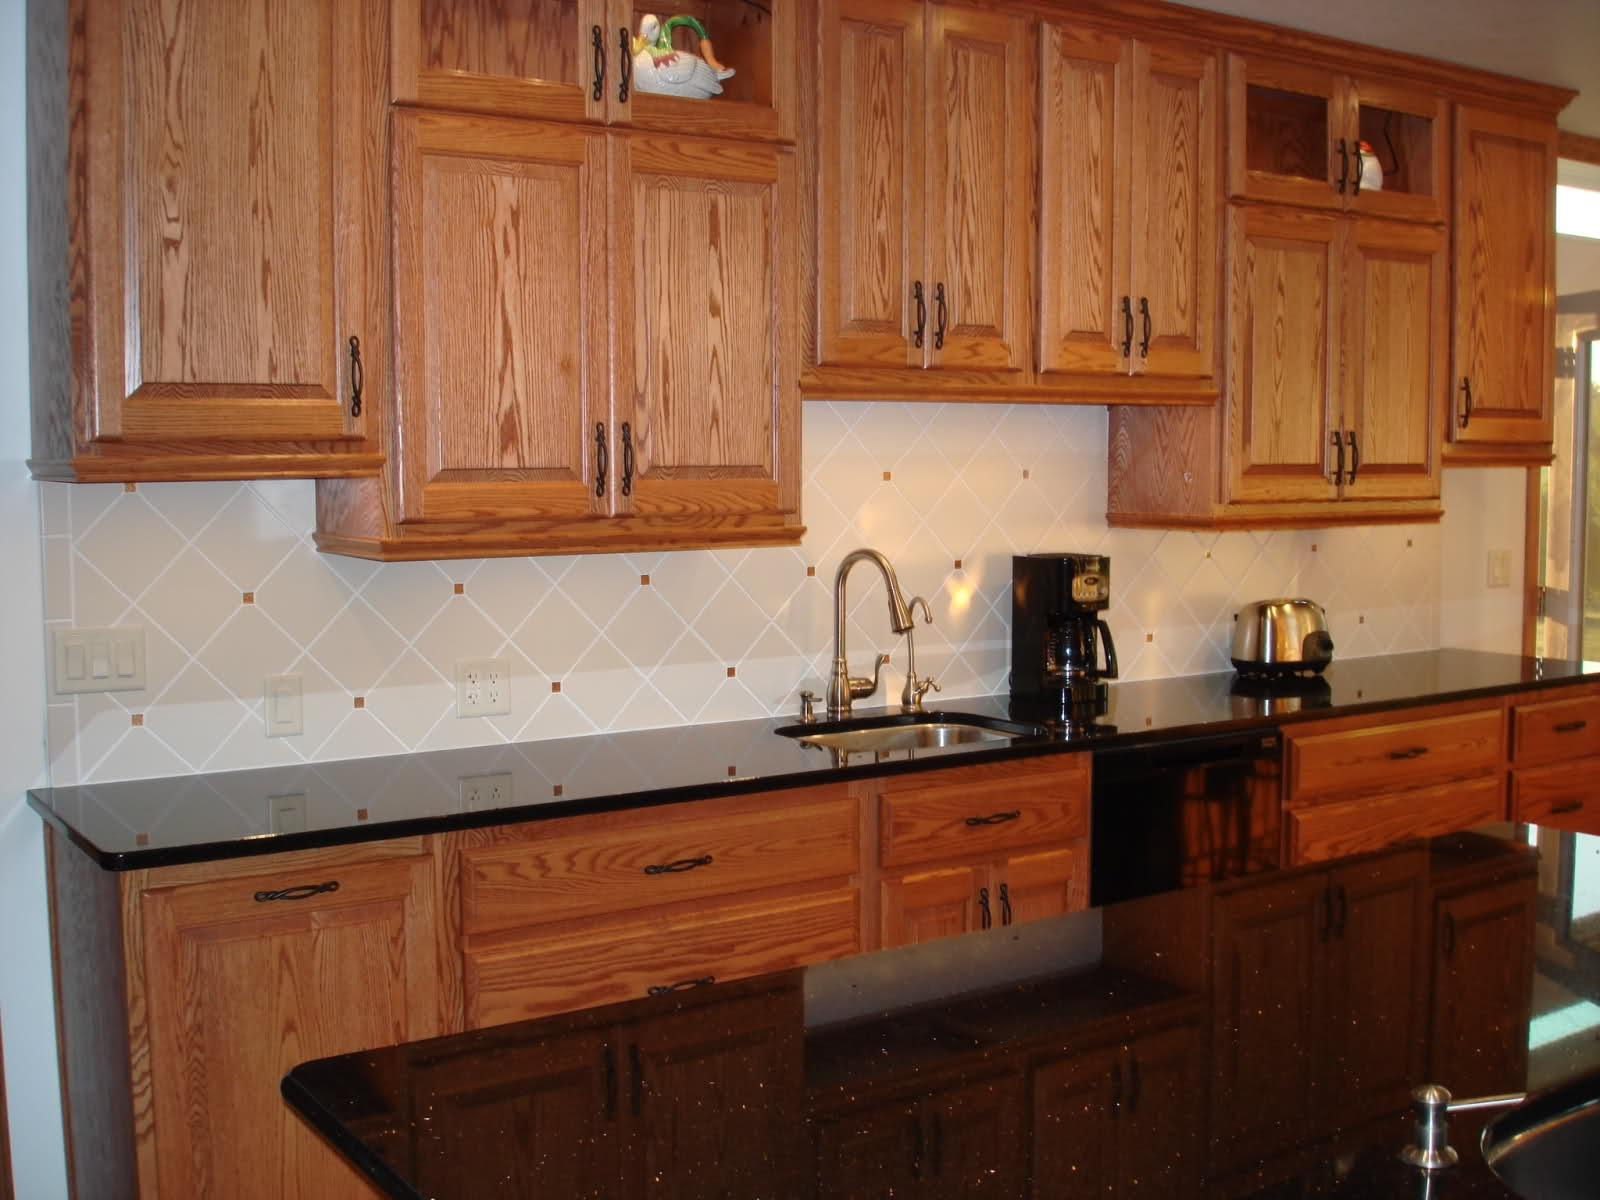 Kitchen Pictures Oak Cabinets Granite